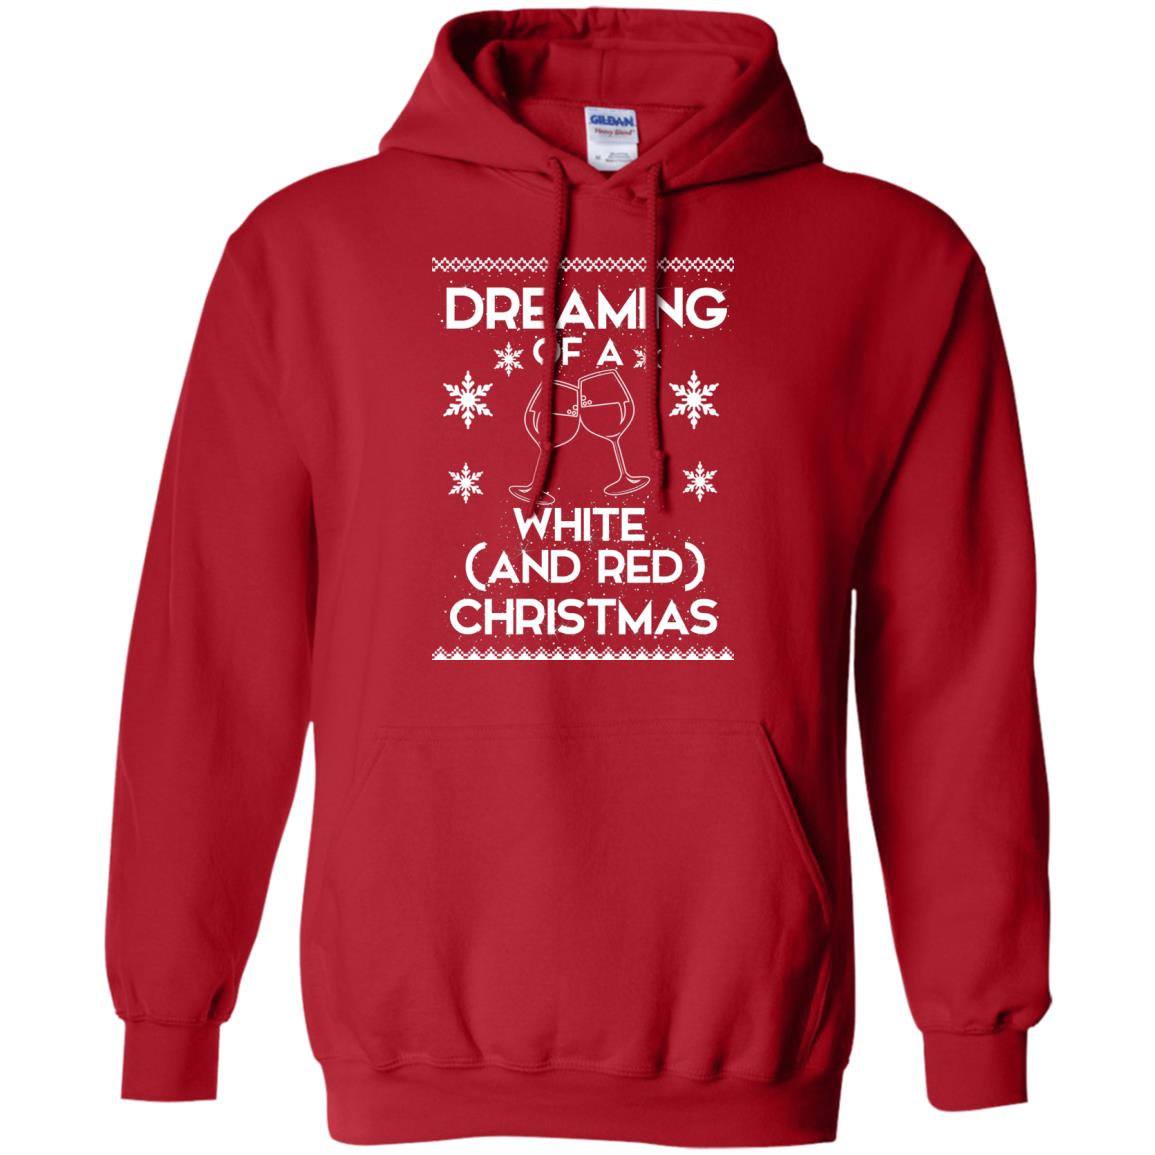 image 1761 - Dreaming of a White and Red Christmas Sweatshirt, Hoodie